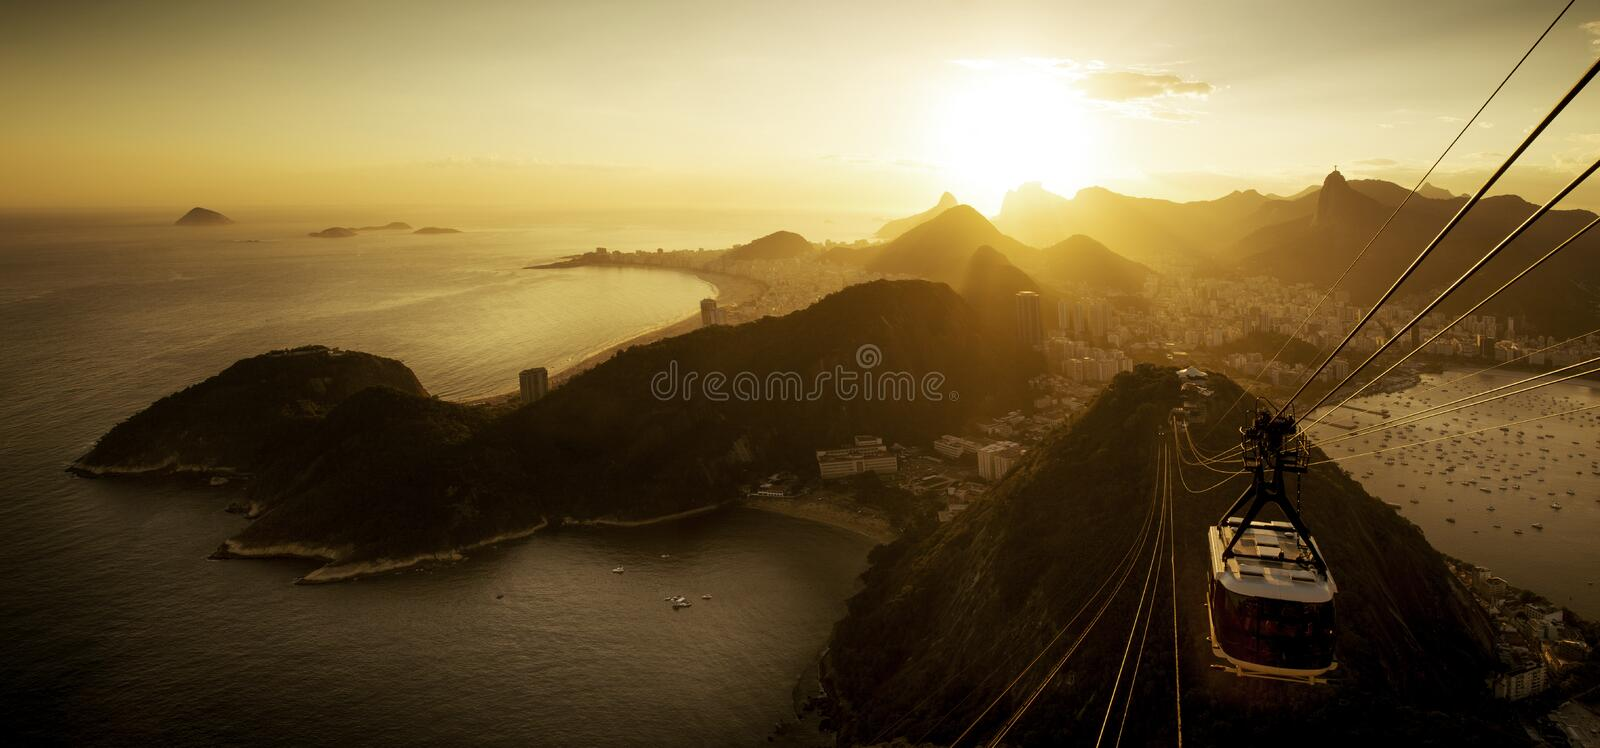 Aerial View of Rio de Janeiro from the Sugarloaf Mountain stock image